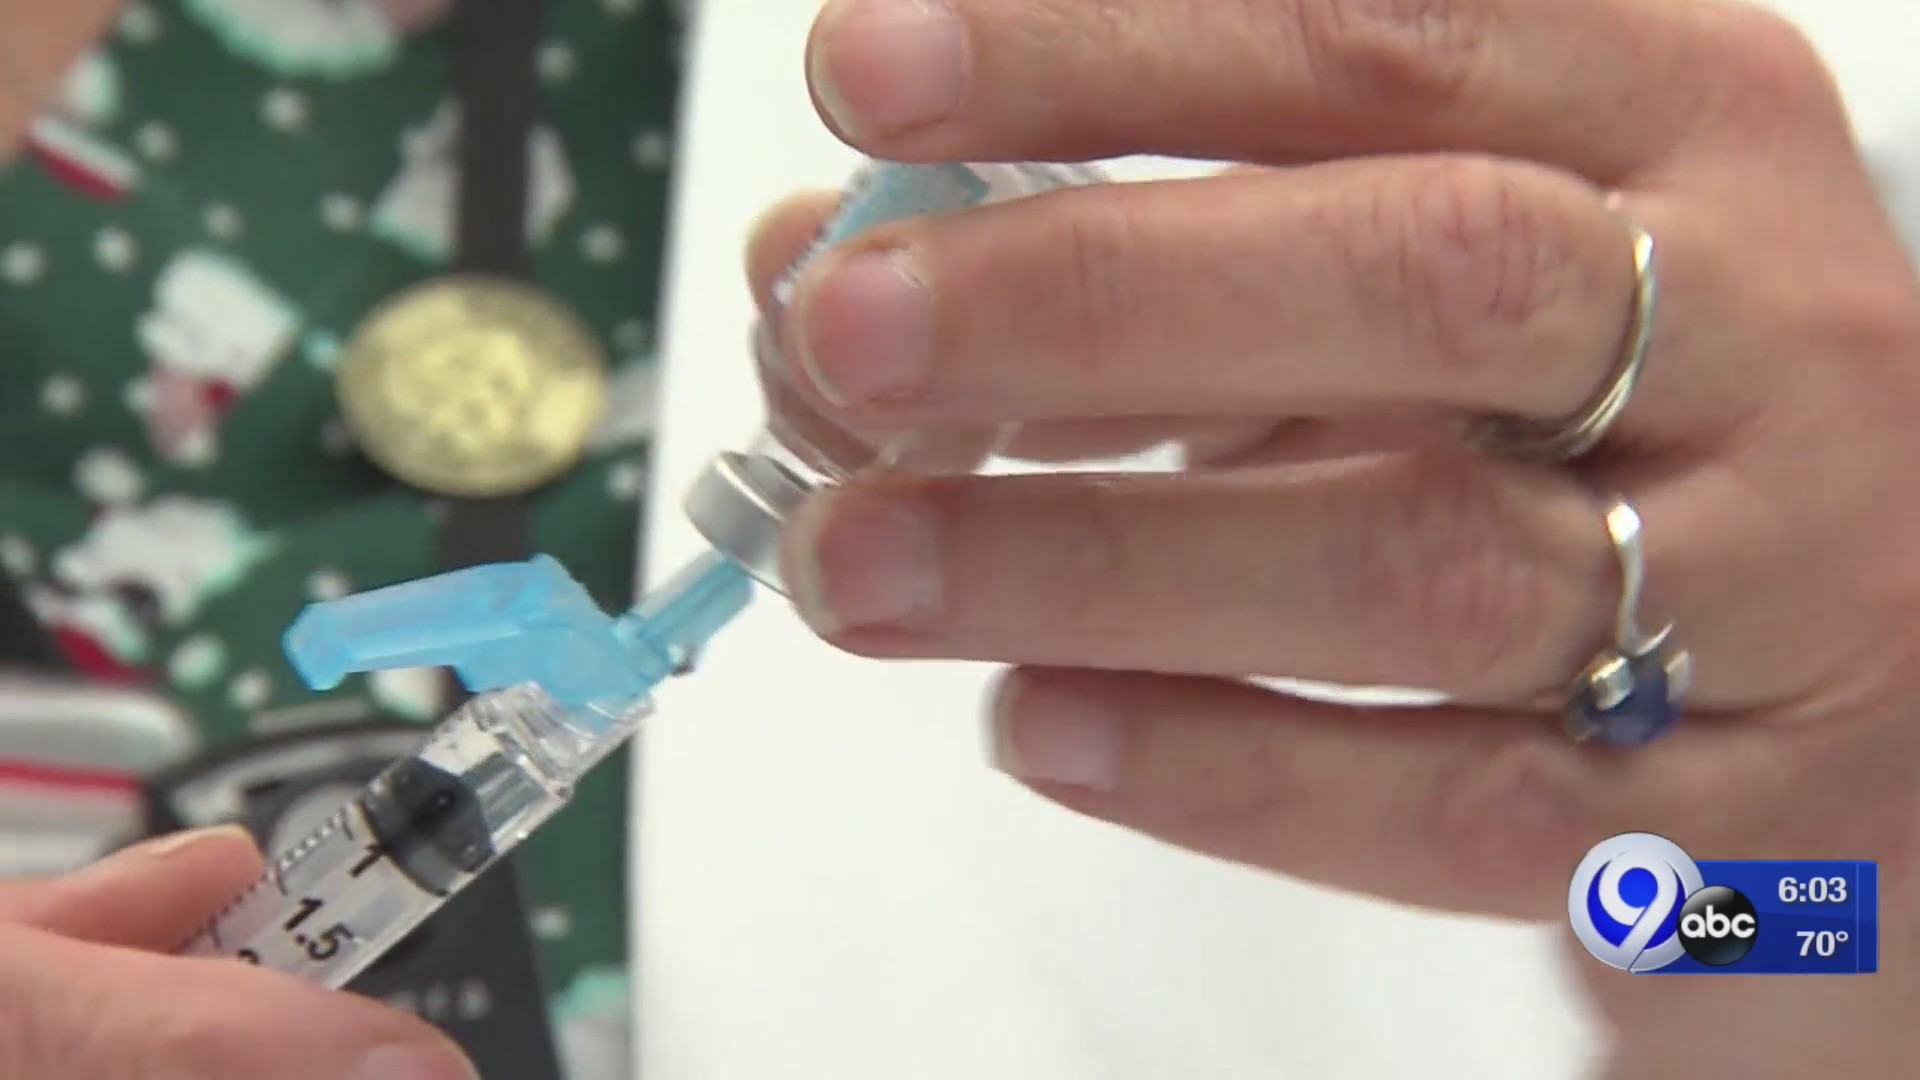 Shortage of high-dose vaccine impacting seniors